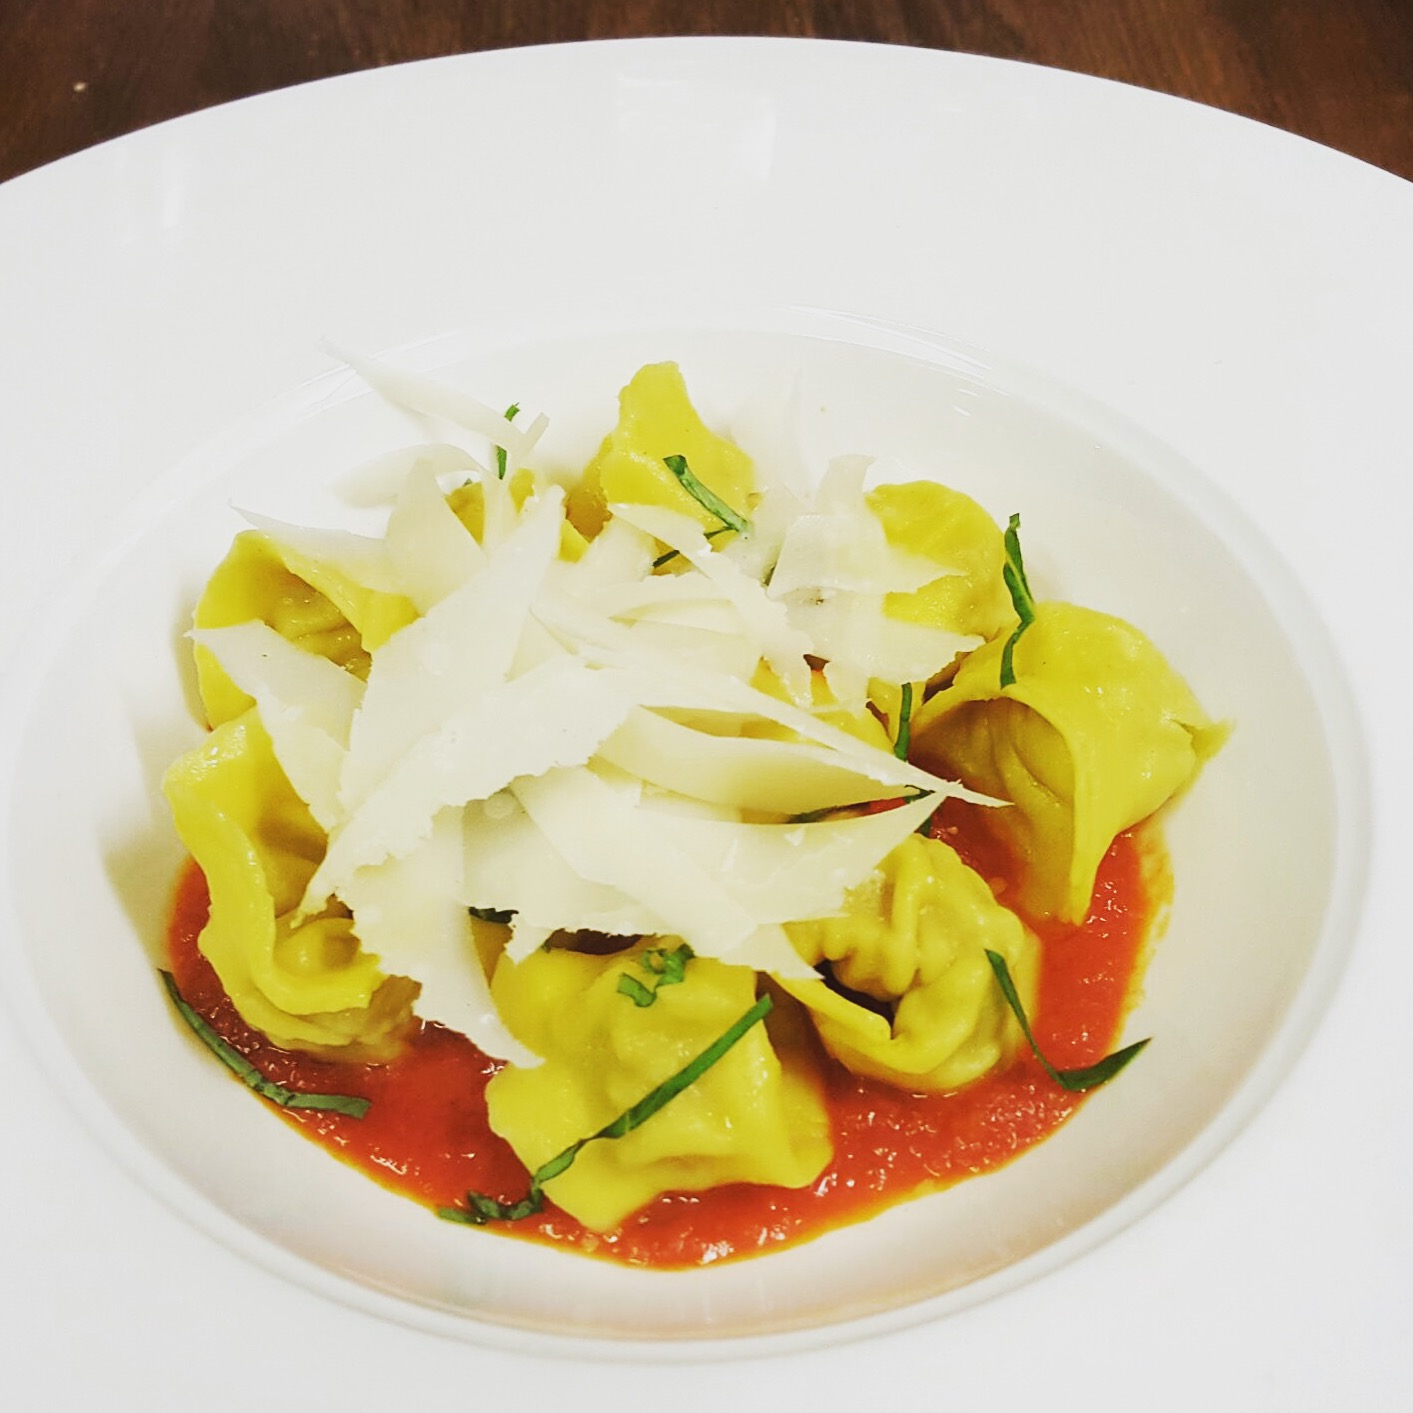 Homemade meat tortellini with tomato sauce and parmesan shavings